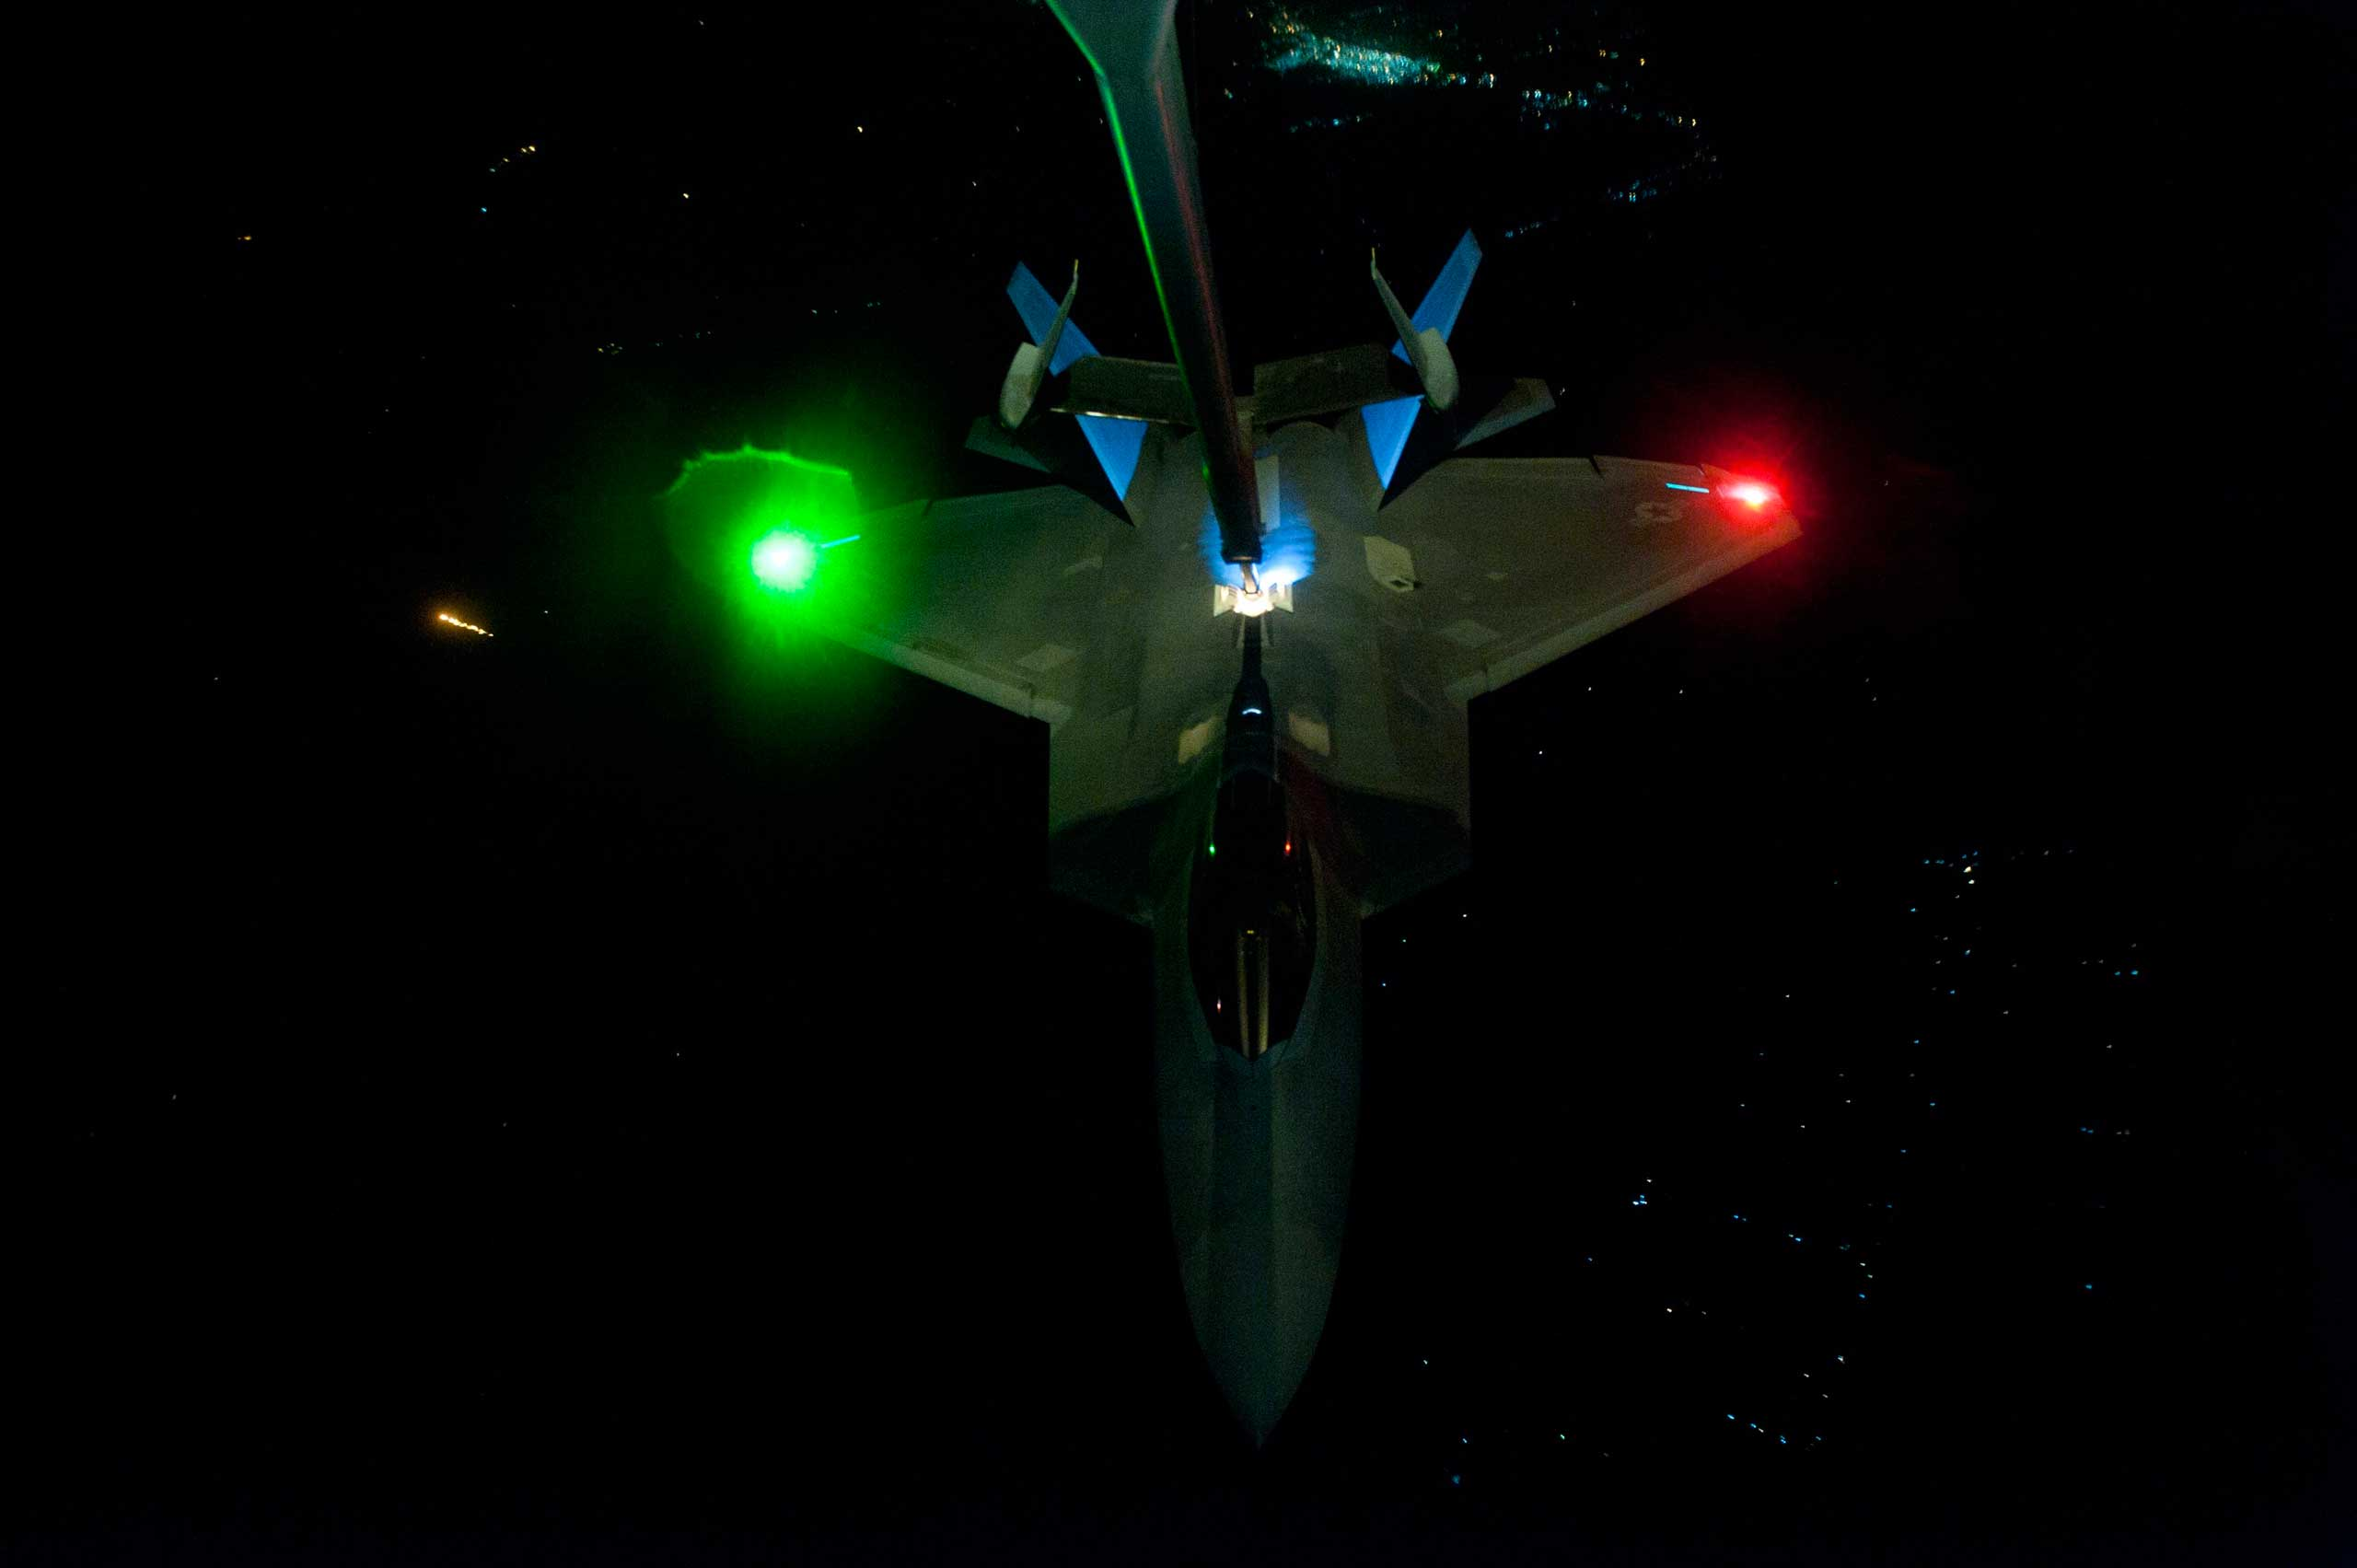 Sept. 26, 2014. A U.S. Air Force KC-10 Extender refuels an F-22 Rapt or fighter aircraft prior to strike operations in Syria. These aircraft were part of a strike package that was engaging ISIL targets in Syria.